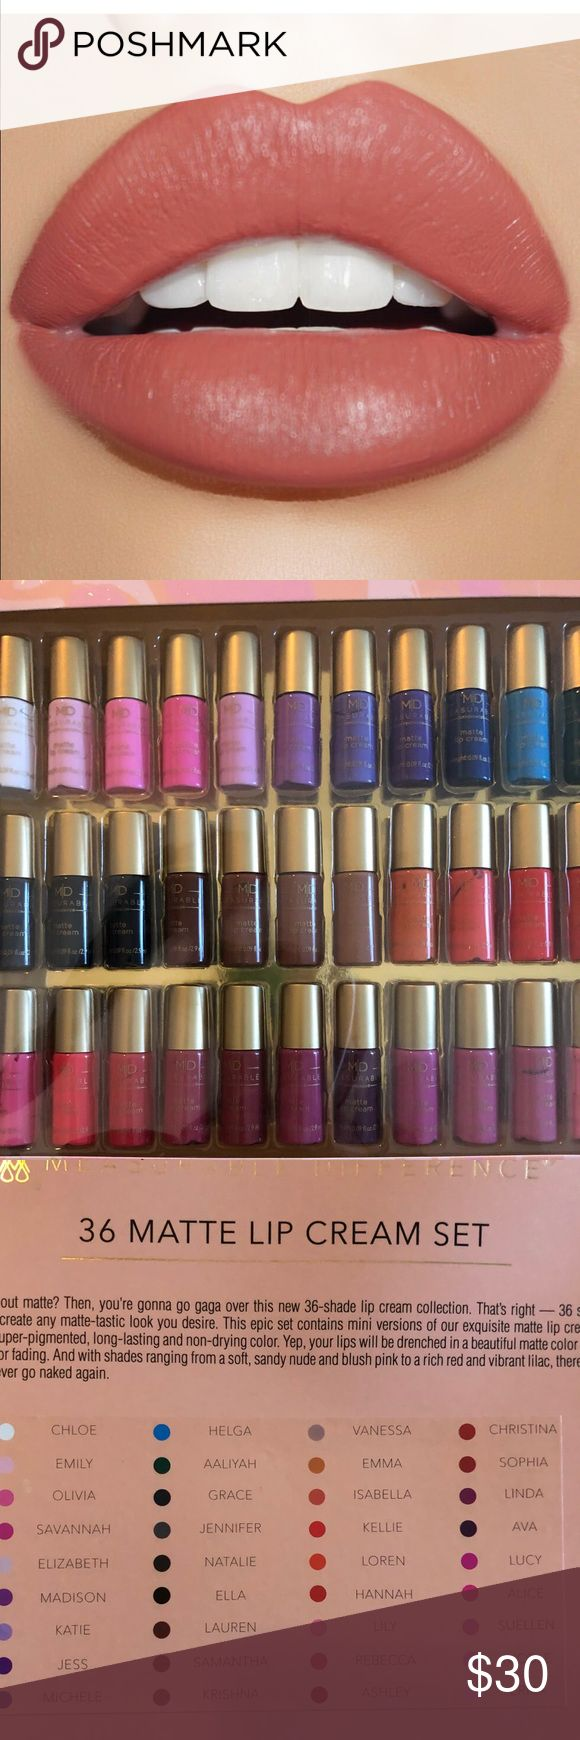 New 36 Matte Soft Cream liquid  lipsticks Set Listing is for a lip vault of matte lip colors. Soft cream formula. Set includes  a wide variety of 36 liquid lipstick colors. There is a shade for everyone in this collection. Also good for holiday gifts! Description and color names in pics. 2.9ml tubes. 💕💕💕💕Price firm 💕💕💕💕💕 M. Difference Makeup Lipstick